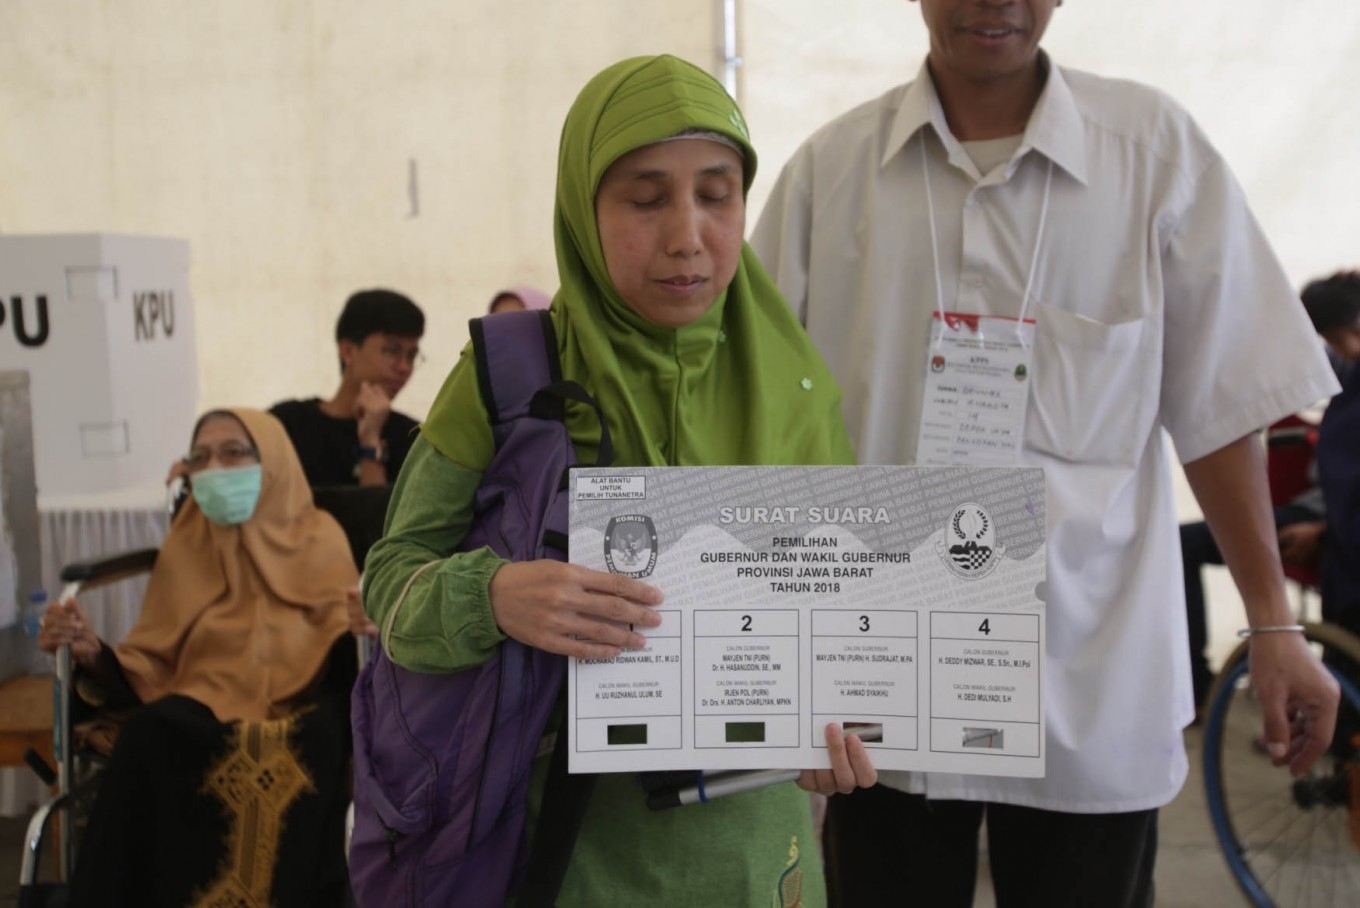 A disabled woman casts her vote in the West Java gubernatorial election at a carnival-themed polling station in Pondok Jaya, Depok, West Java on Wednesday, June 27, 2018. JP/Wendra Ajistyatama